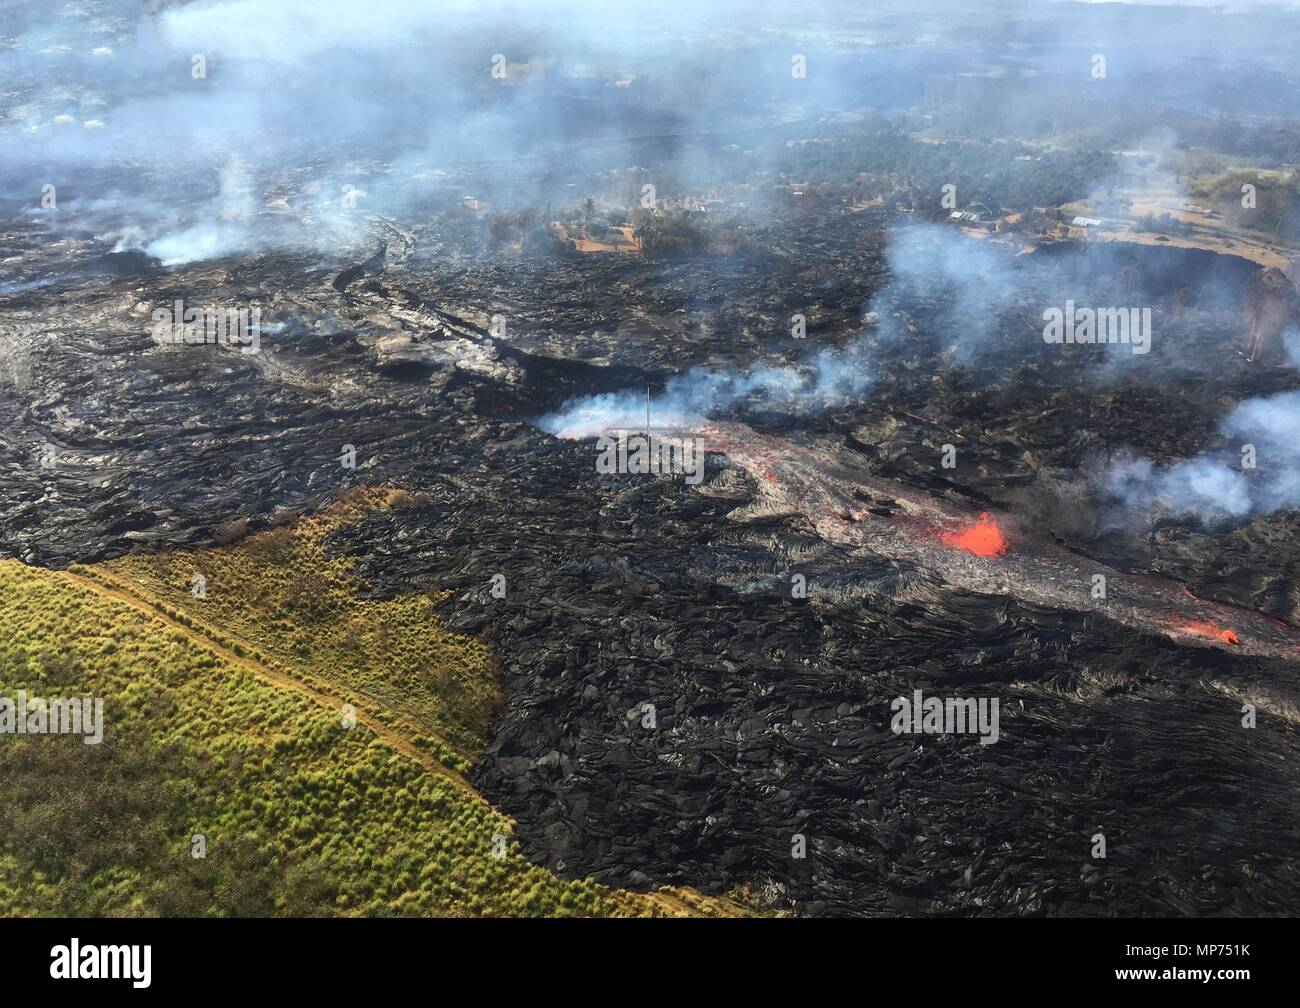 Hawaii, USA. 20th May 2018. Channelized lava streams down fissure 20 into a massive ground crack from the eruption of the Kilauea volcano May 20, 2018 in Pahoa, Hawaii. Credit: Planetpix/Alamy Live News - Stock Image